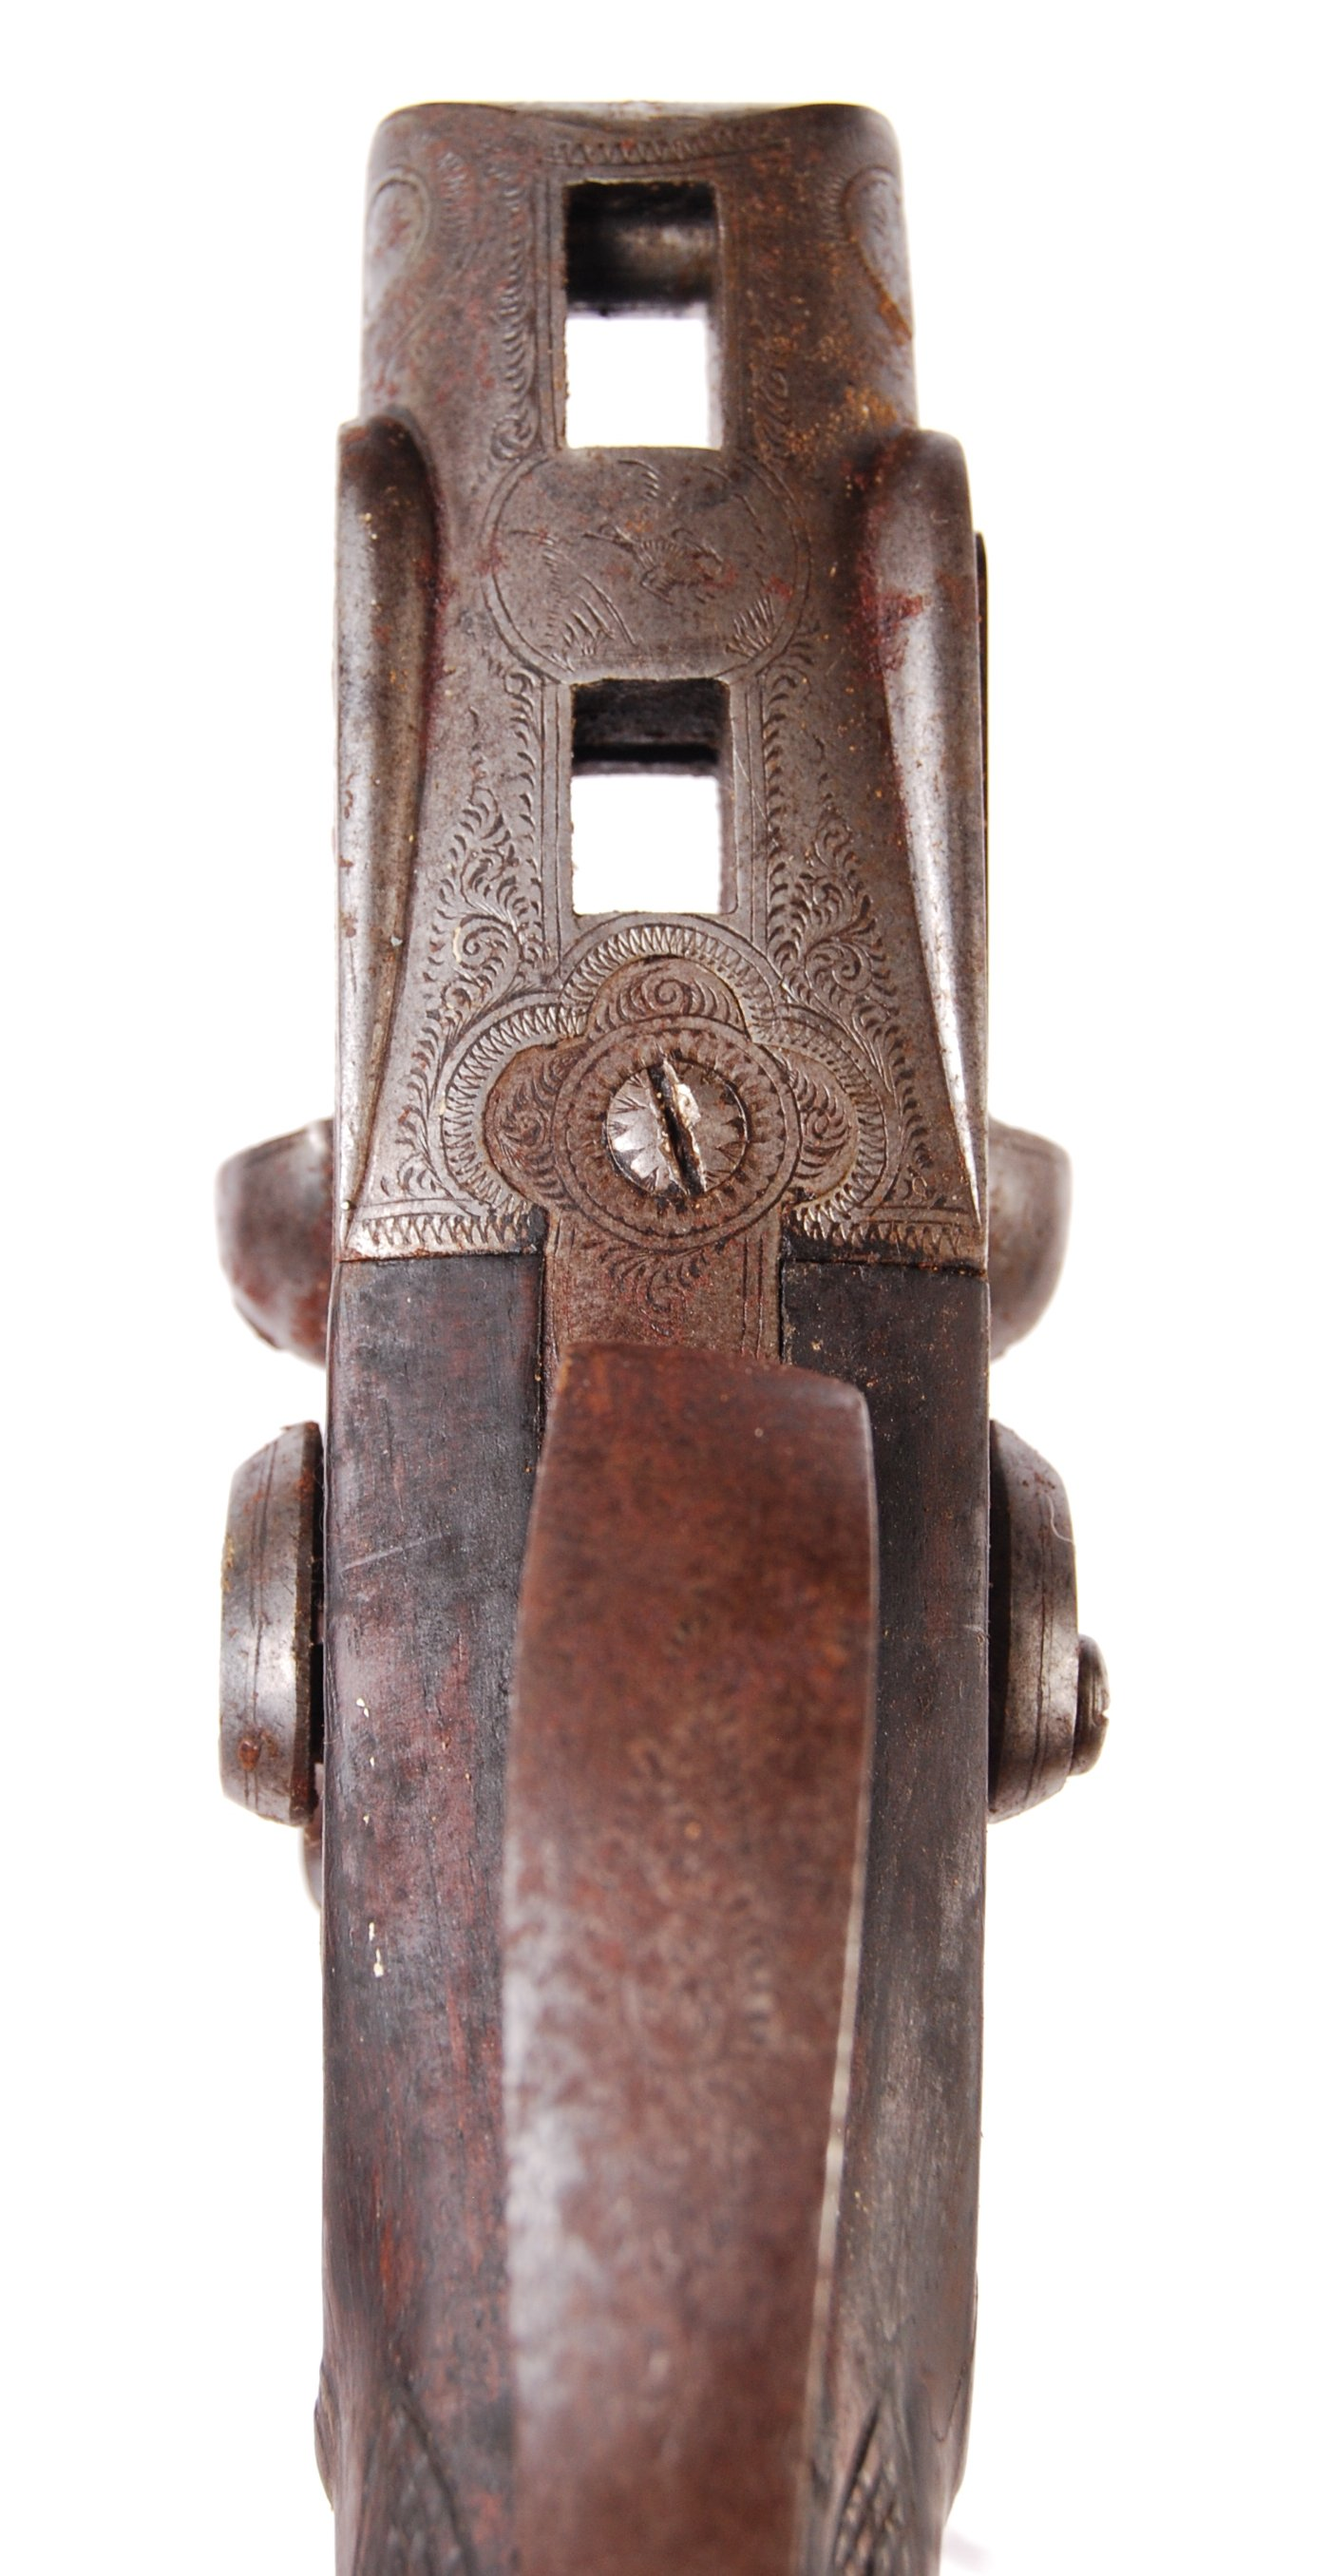 ANTIQUE 19TH CENTURY SV MARDELL SHOTGUN BUTT - Image 6 of 8